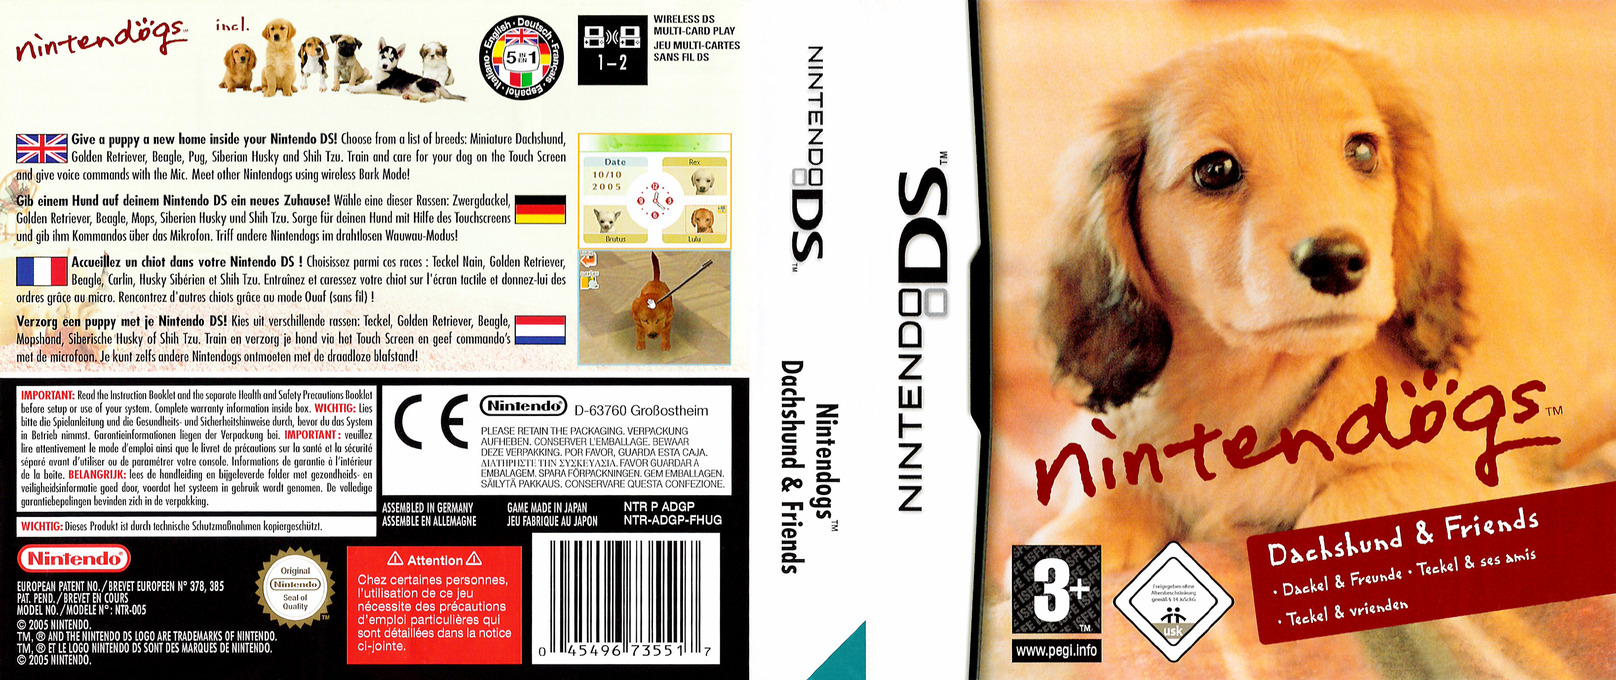 Nintendogs - Dachshund & Friends DS coverfullHQ (ADGP)